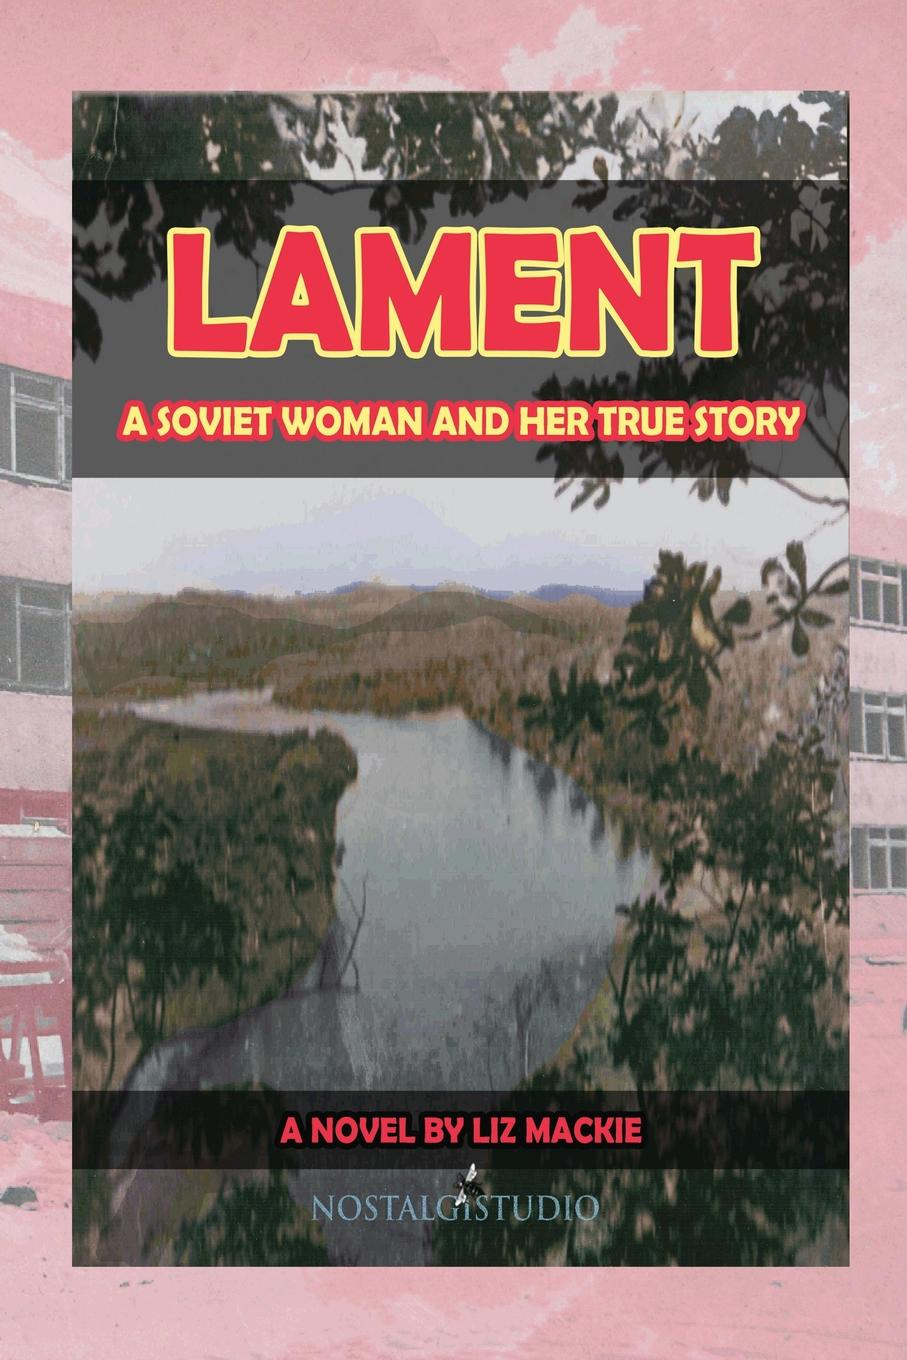 Liz Mackie Lament. A Soviet Woman and Her True Story